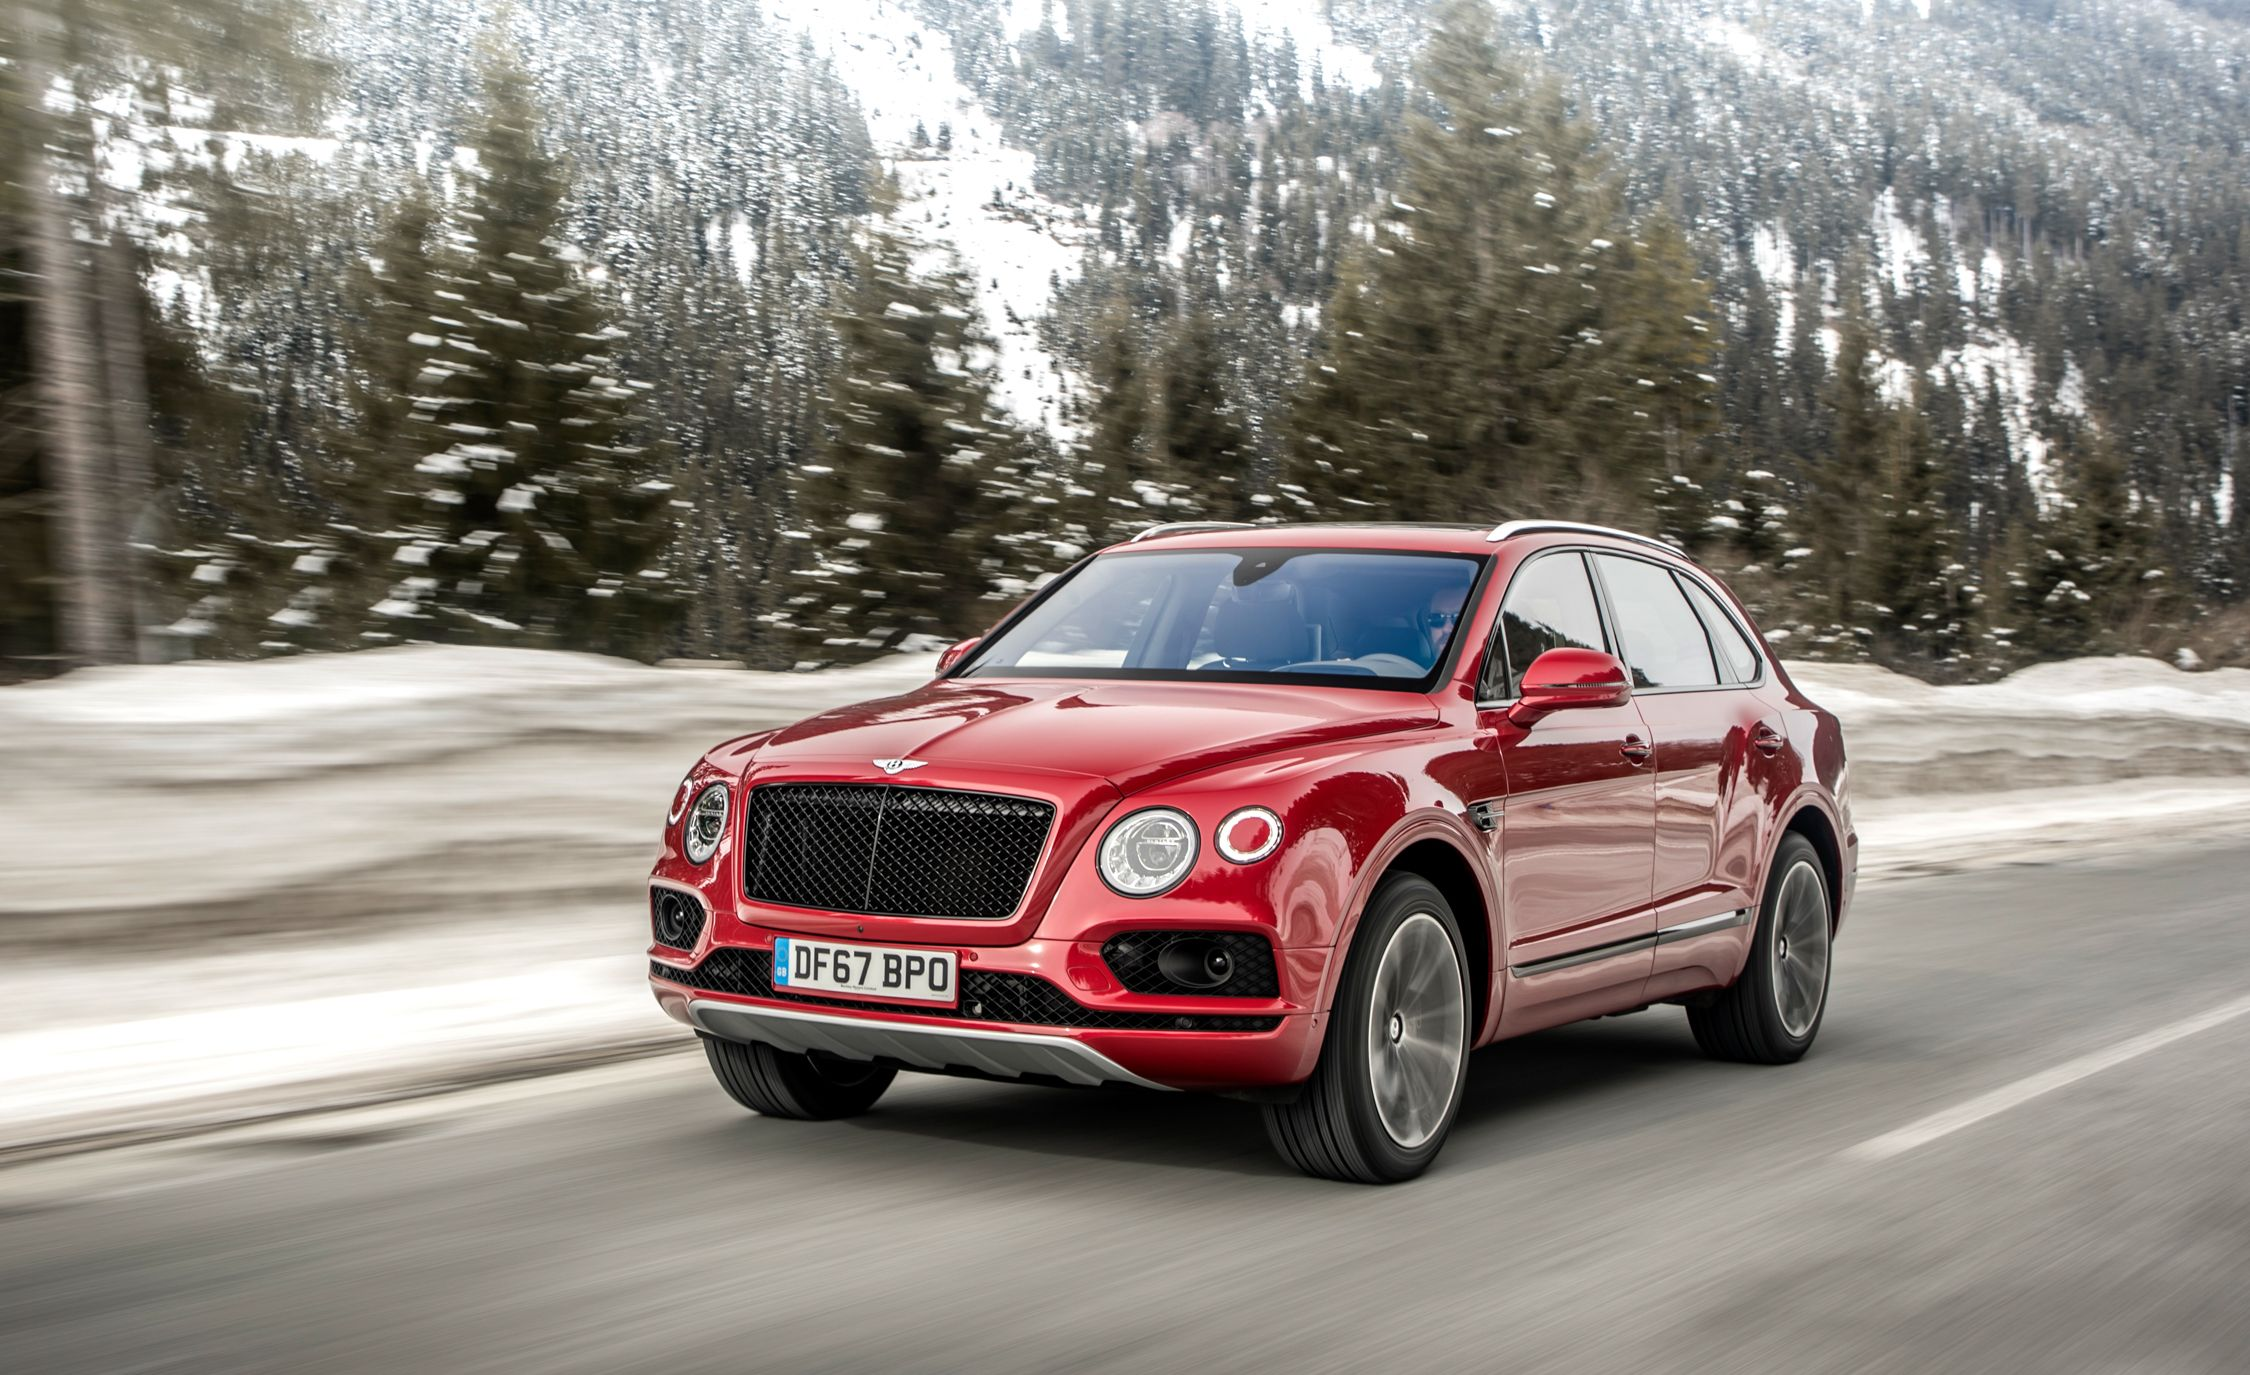 bentley the speed tag concept gentleman related u truck price electric exp s is o open convertible air video